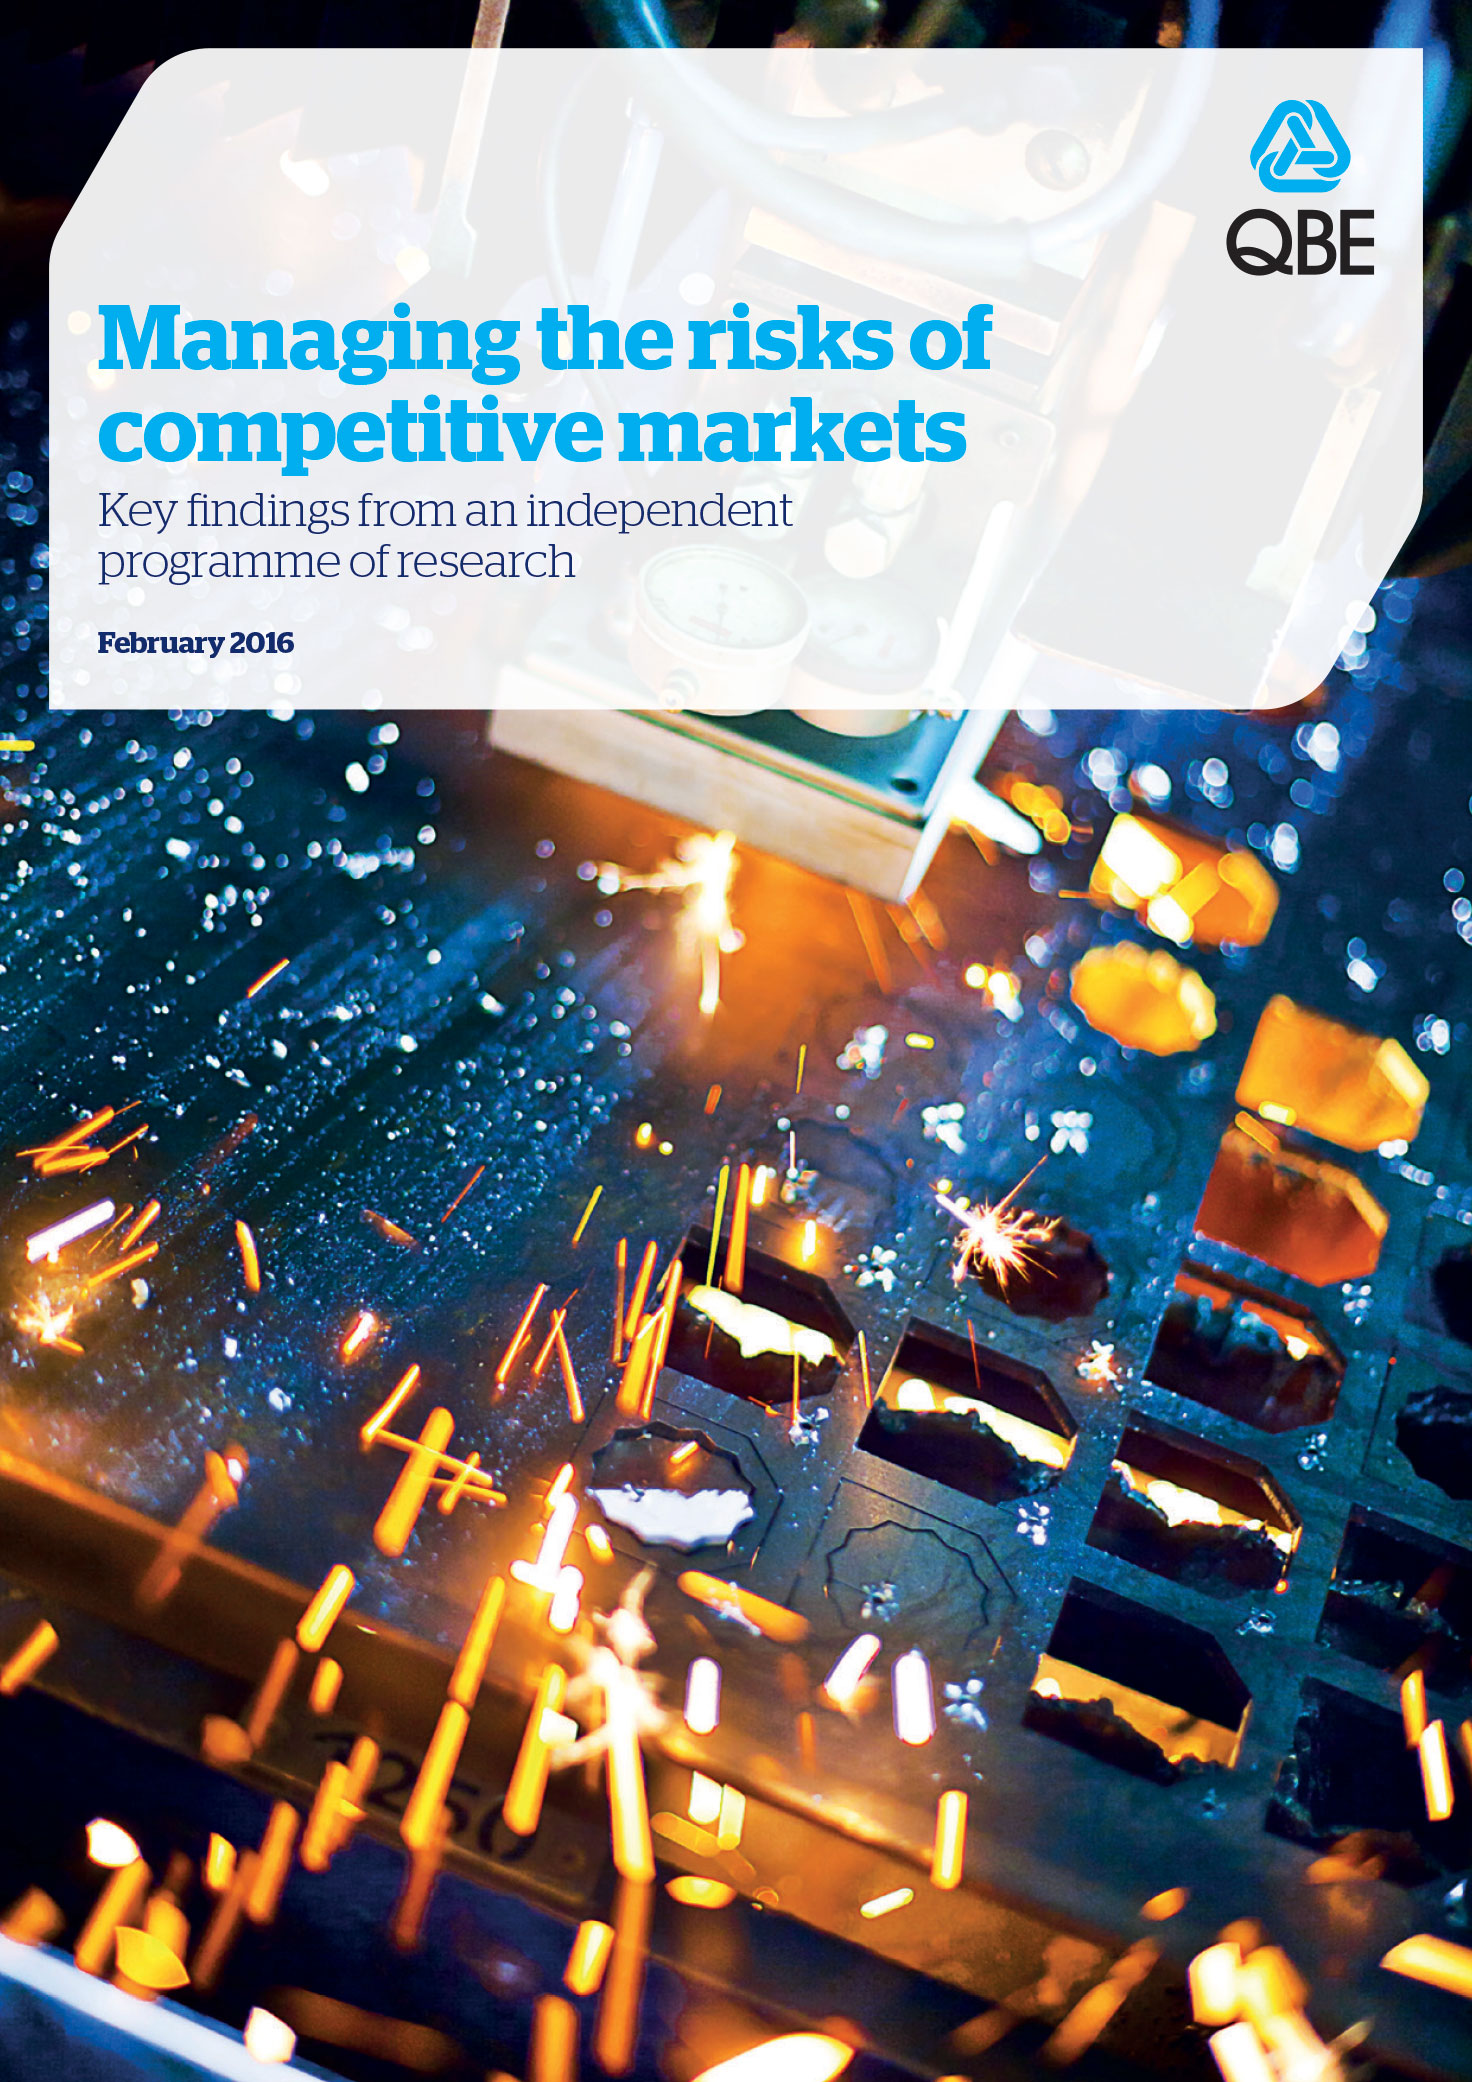 Managing the risks of competitive markets (PDF 5.8Mb)